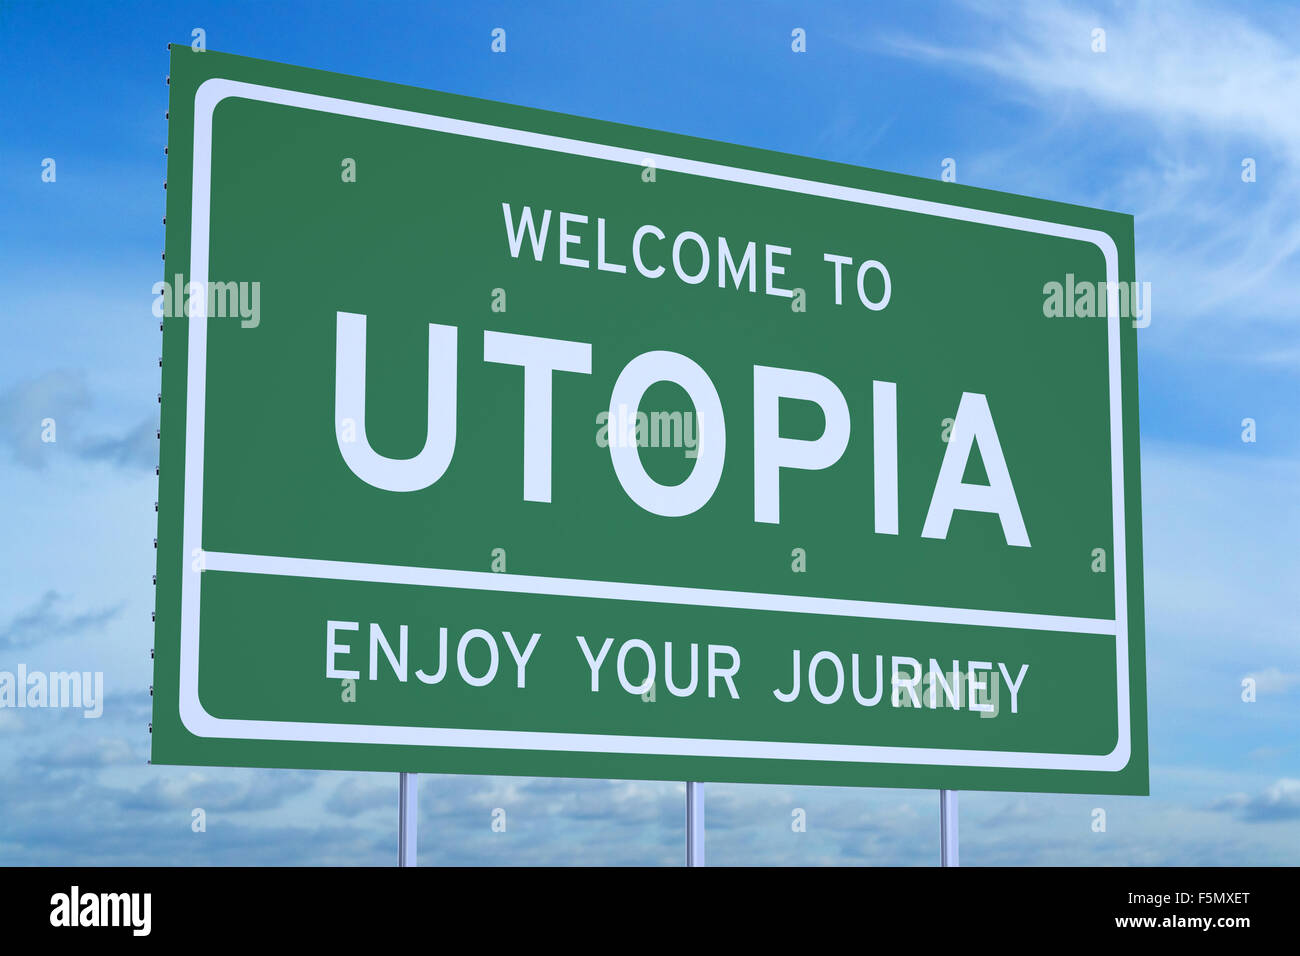 Welcome to Utopia concept on road sign - Stock Image